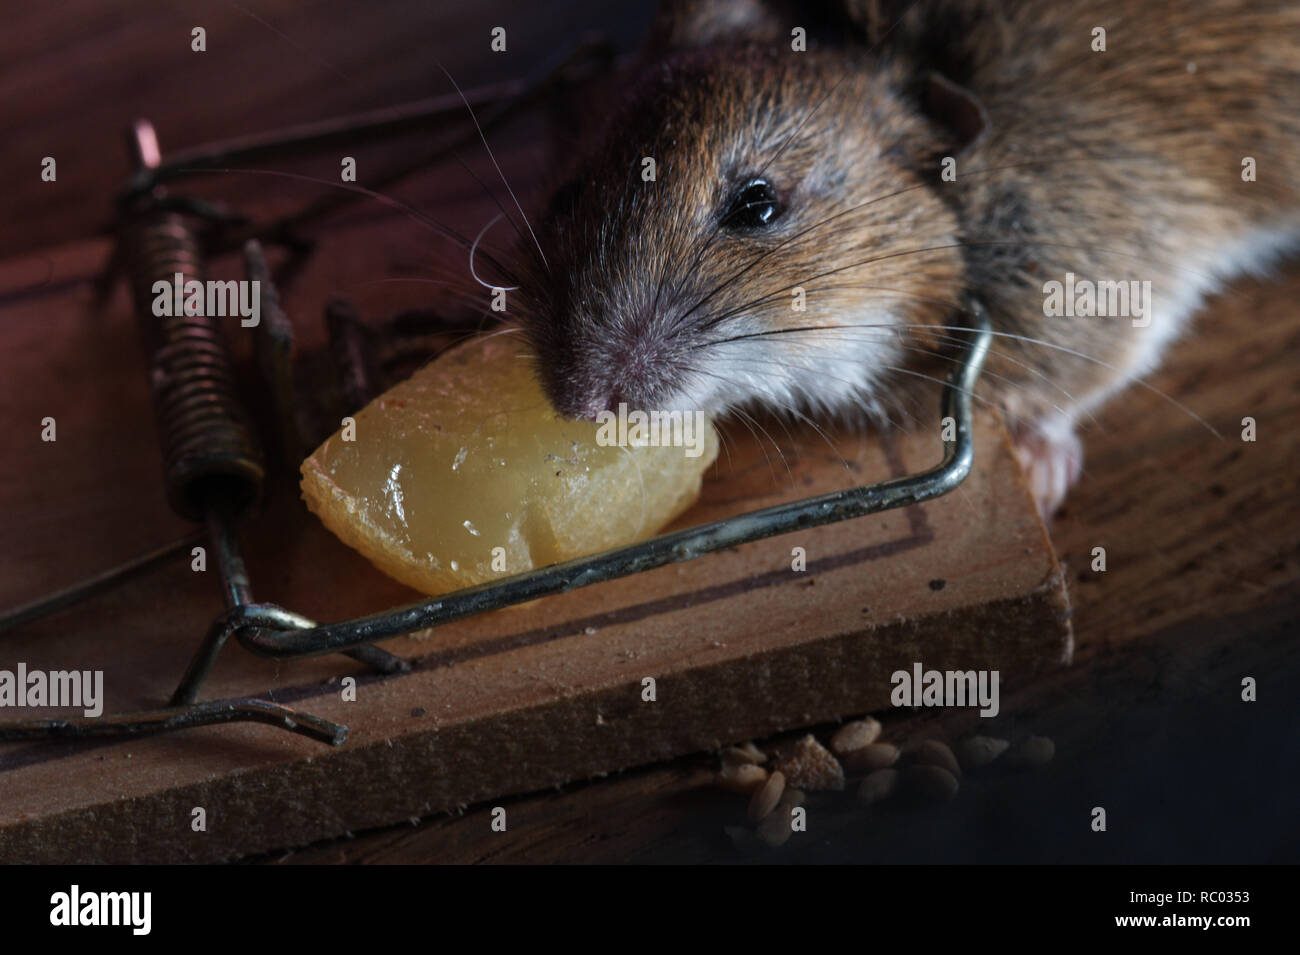 Maus in der Mausefalle gefangen   mouse caught in a mouse trap Stock Photo